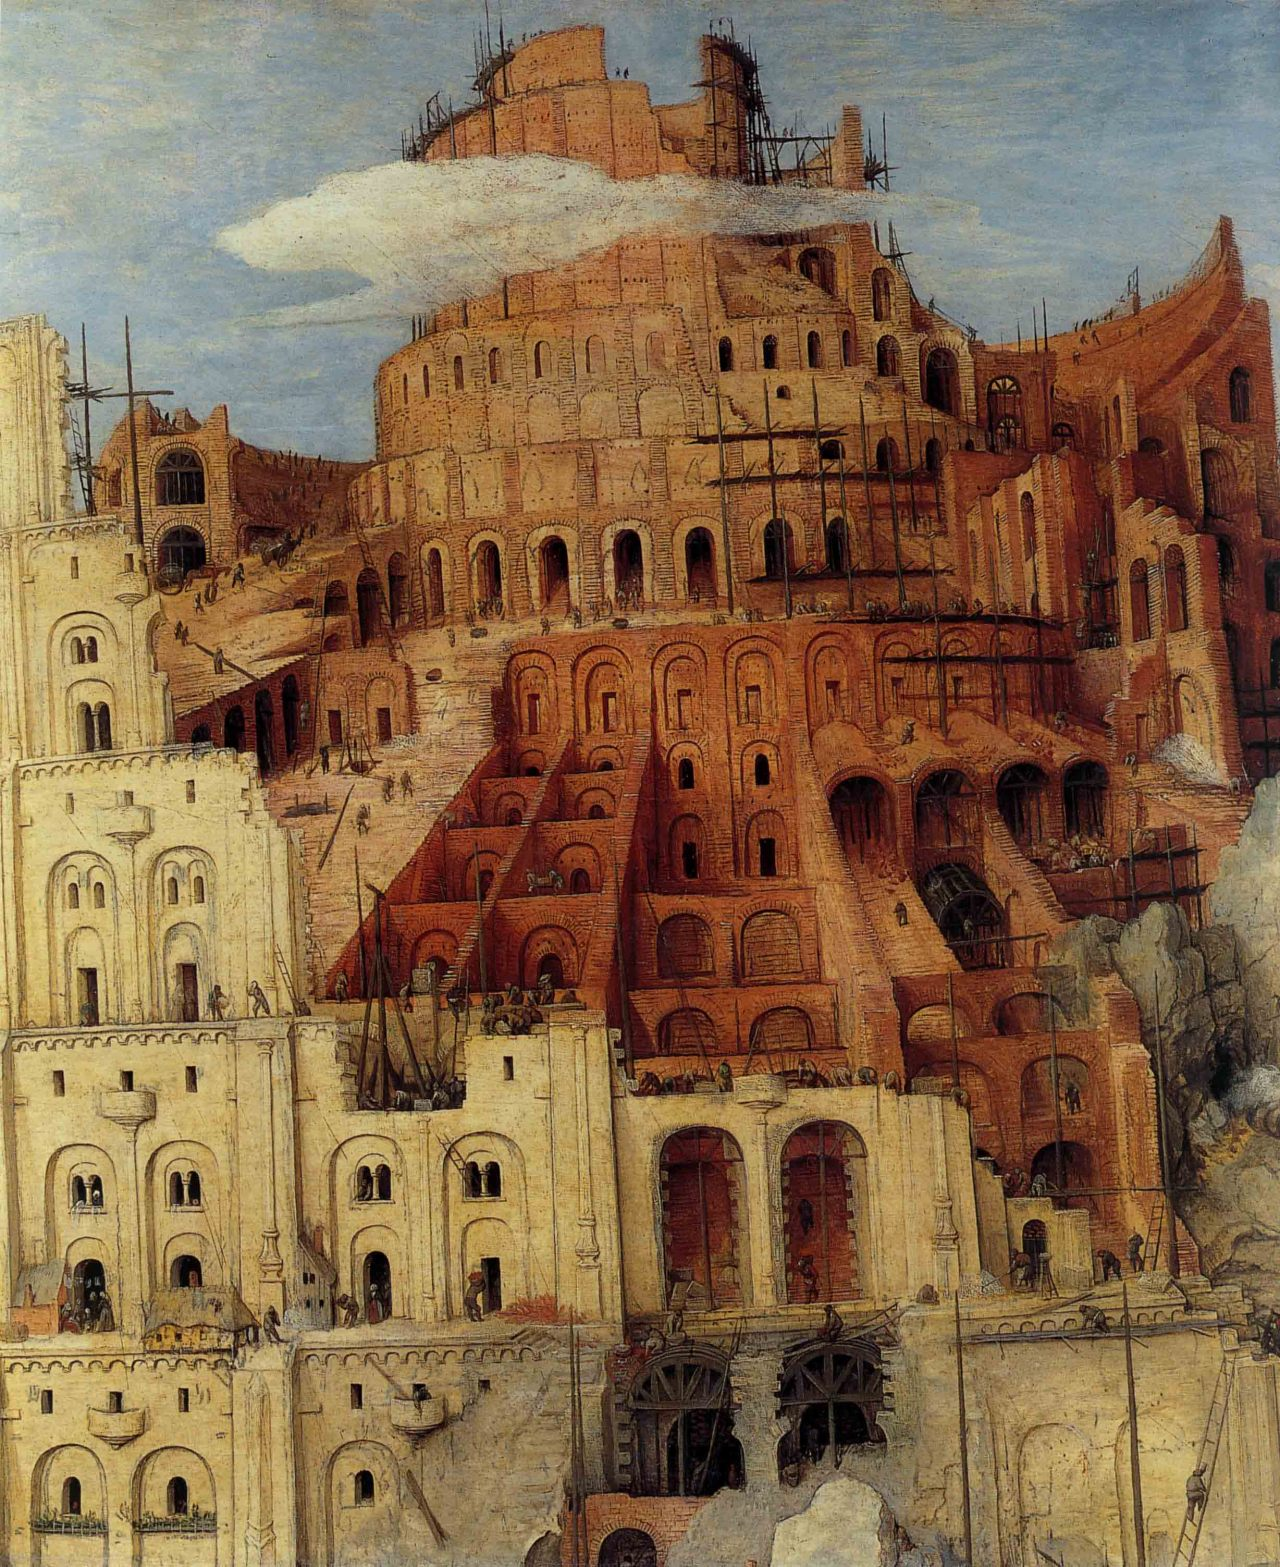 nataliakoptseva:  1563 Bruegel l'Ancien La Tour de Babel, détail Le haut de la Tour, The Tower of Babel, Detail top of the Tower